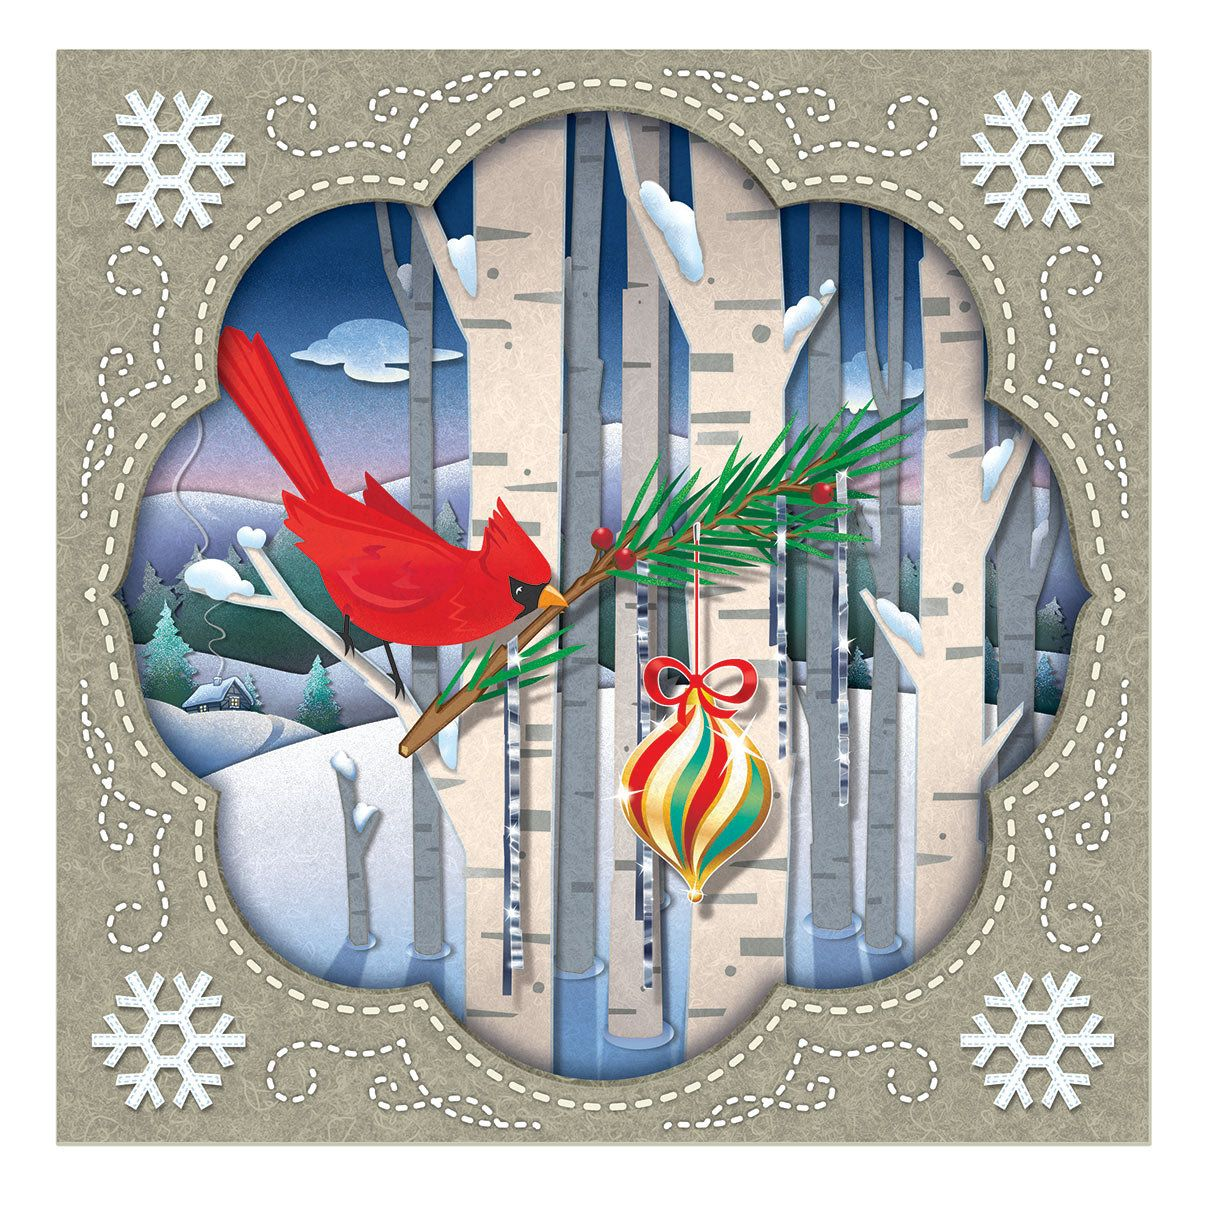 Unicef Christmas Cards 2020 Unicef  Christmas Card Designs for 2020 by Todd Curtis Design at